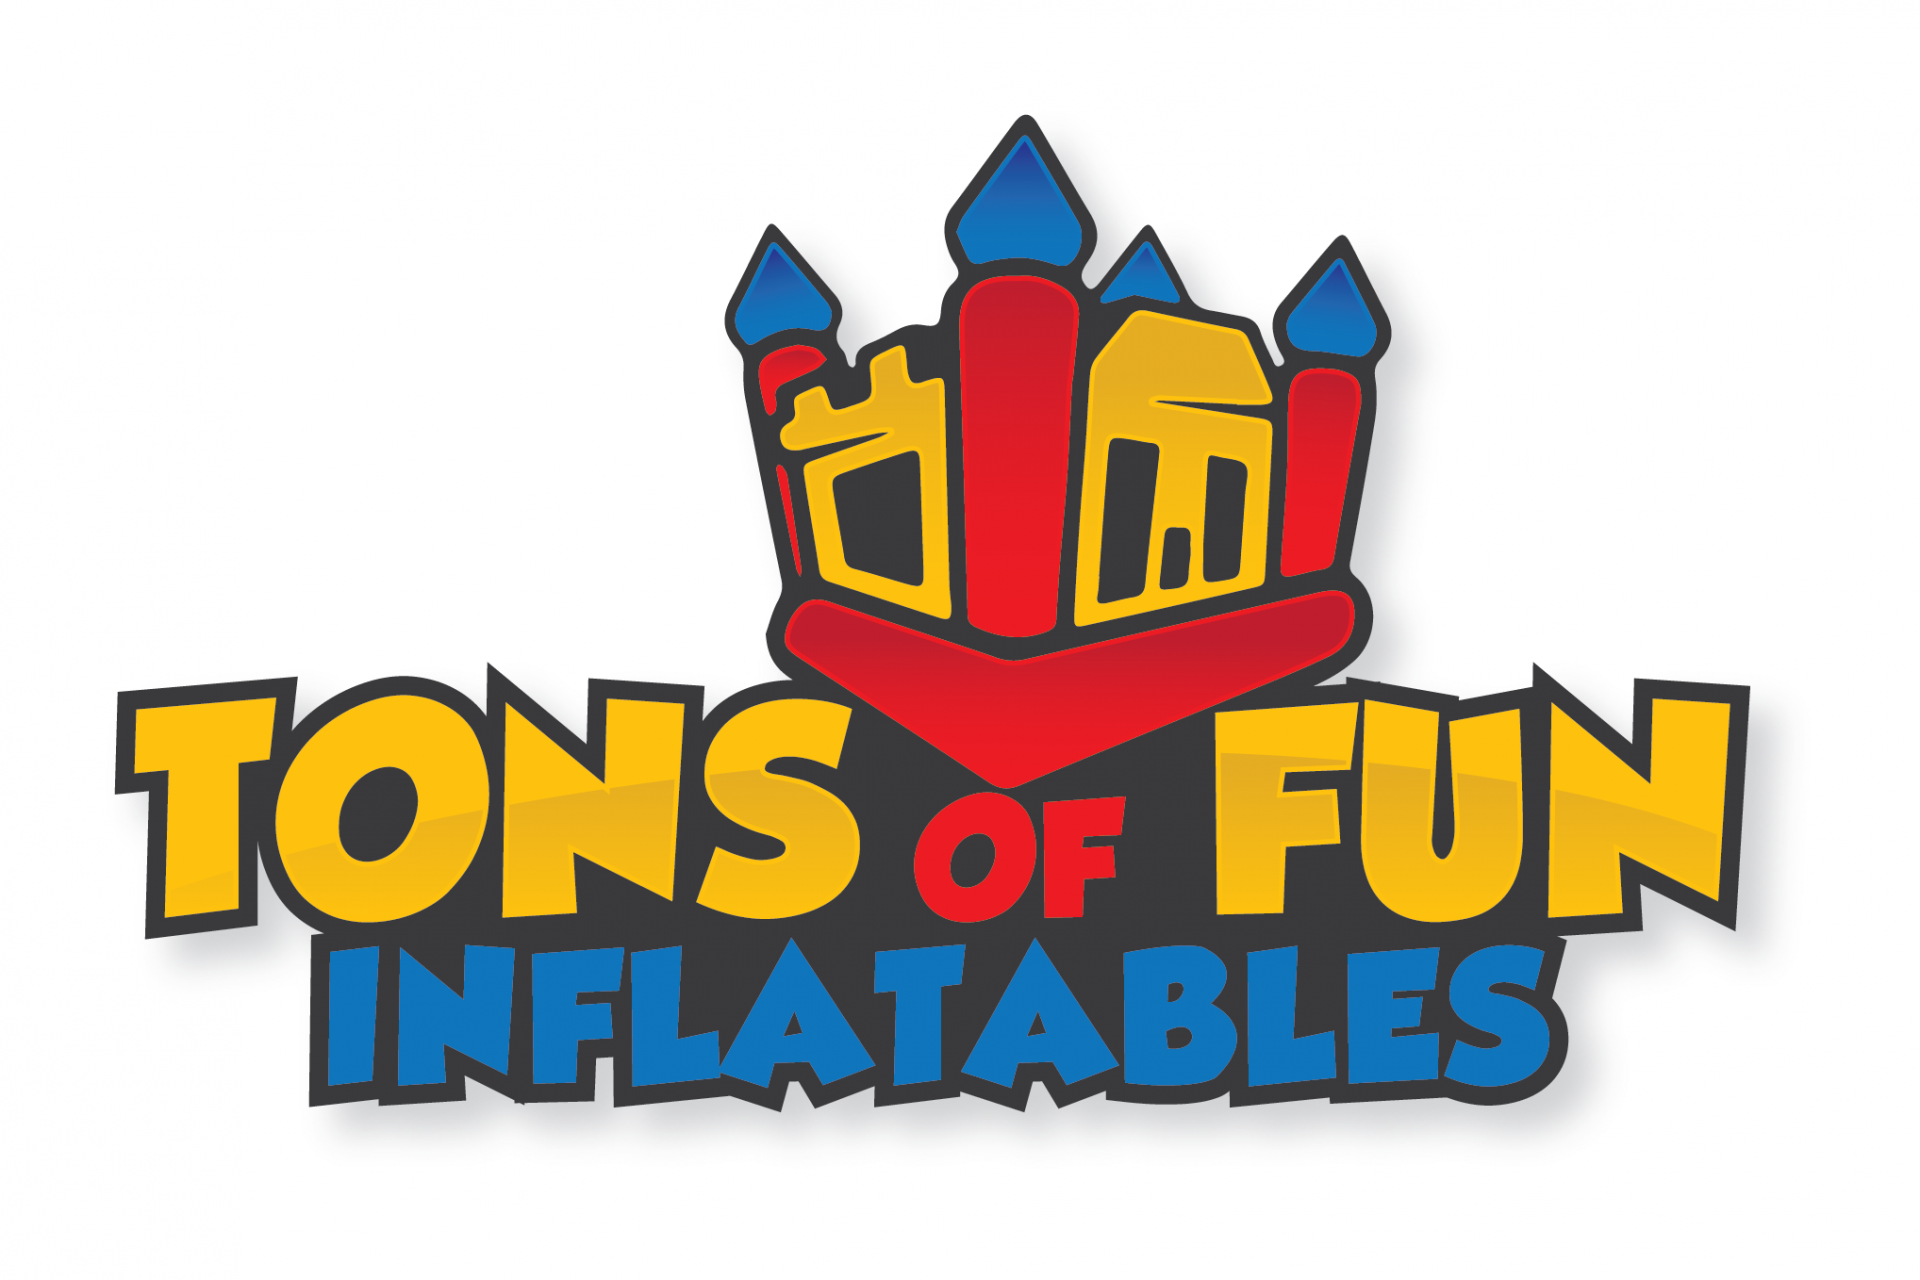 Tons of Fun Inflatables